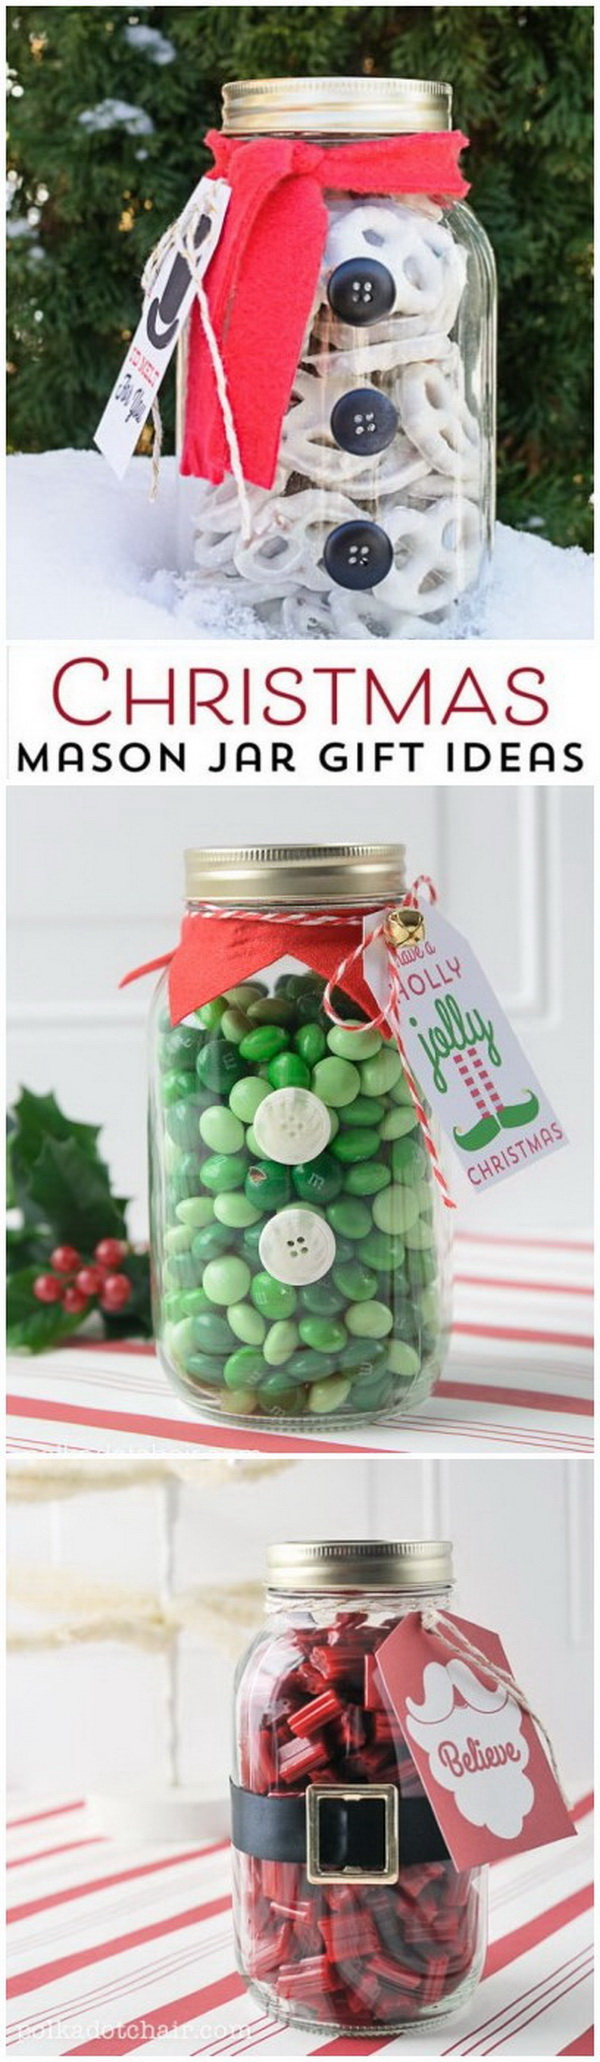 Christmas Mason Jar Gift Idea. These mason jar gifts are so simple to make and can be easily customized for your holiday season!